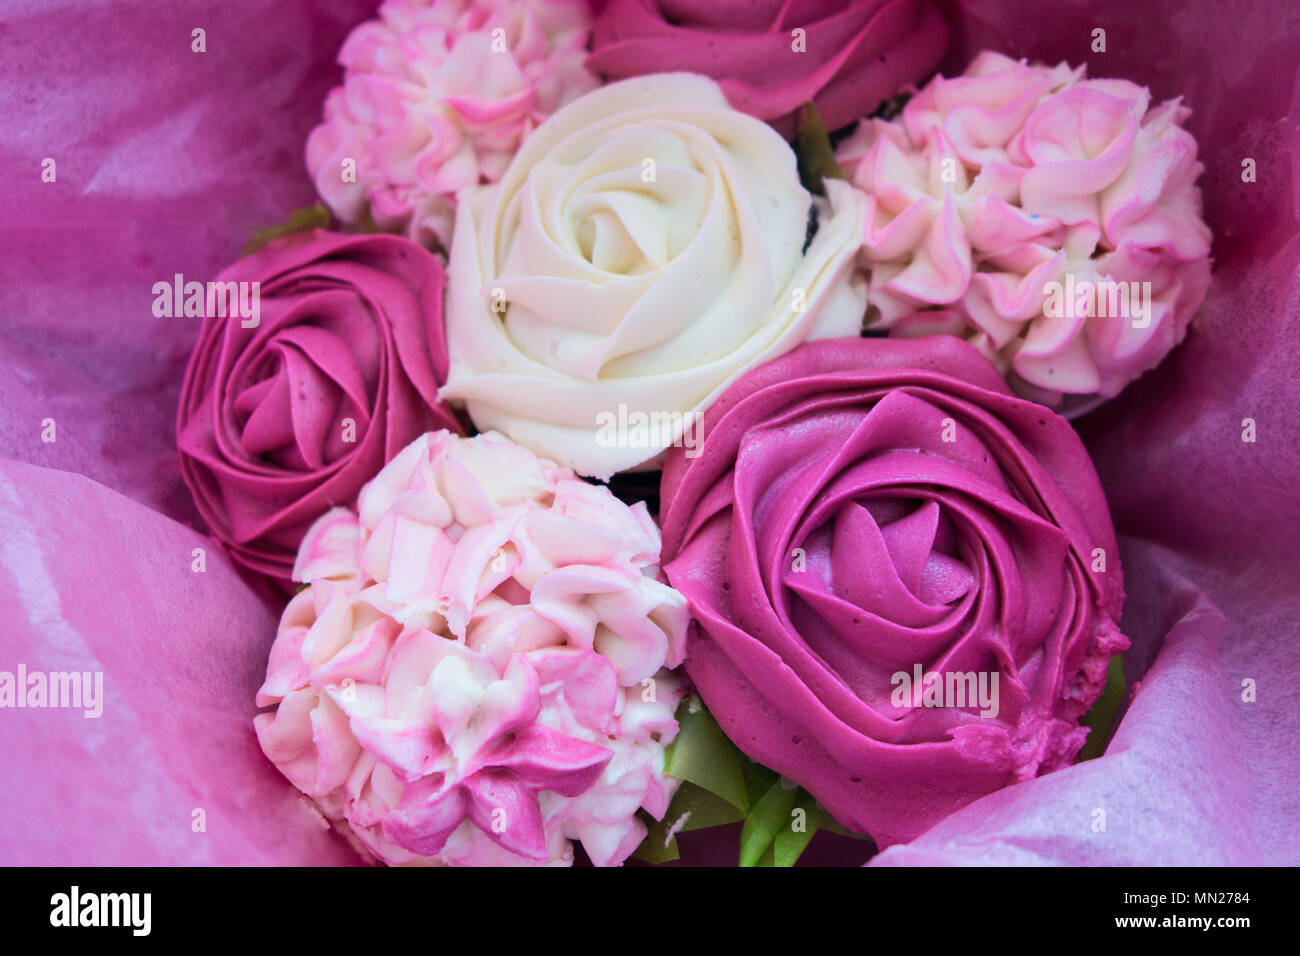 Beautiful Pink Ice Cupcakes That Look Like A Bouquet Of Roses And